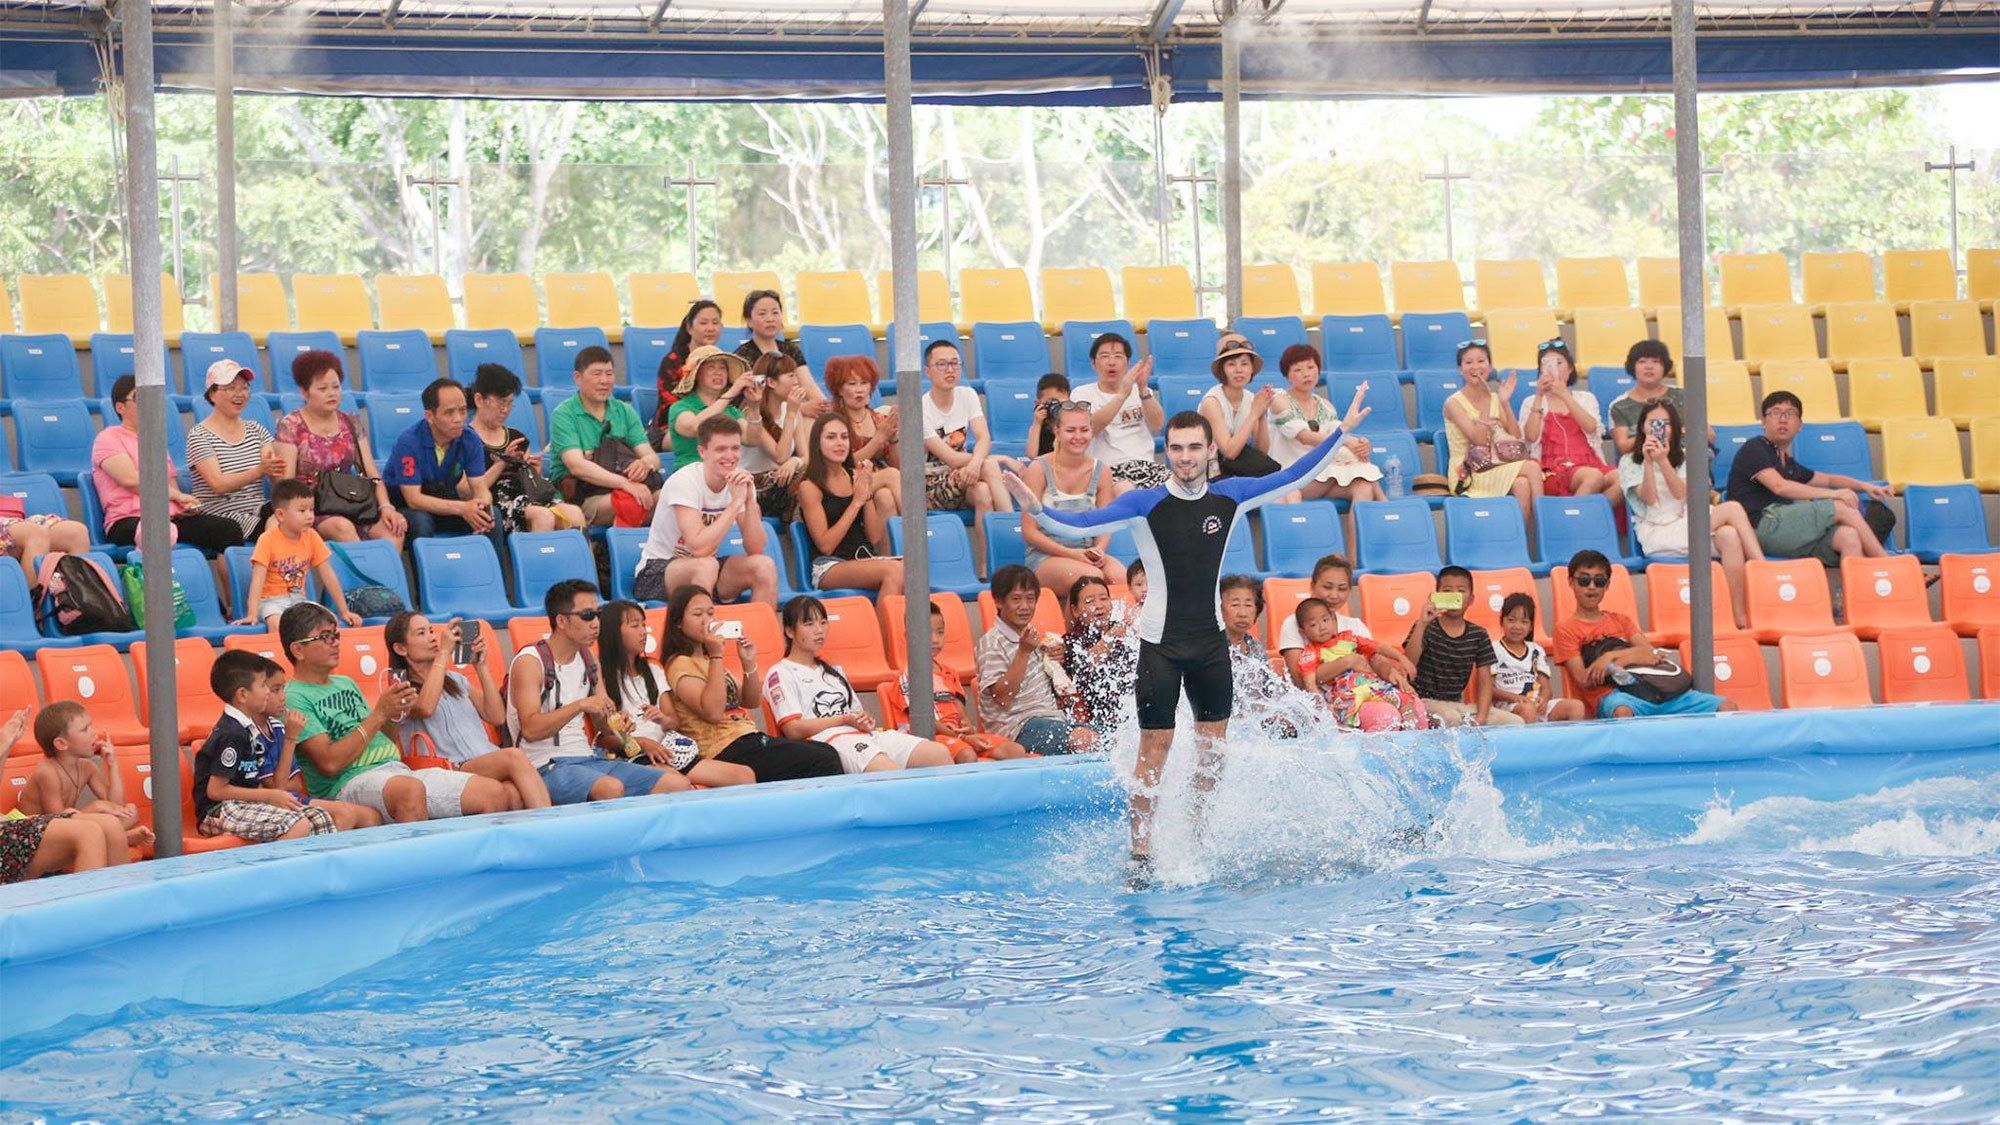 Trainer at the Dolphin Show in Phuket